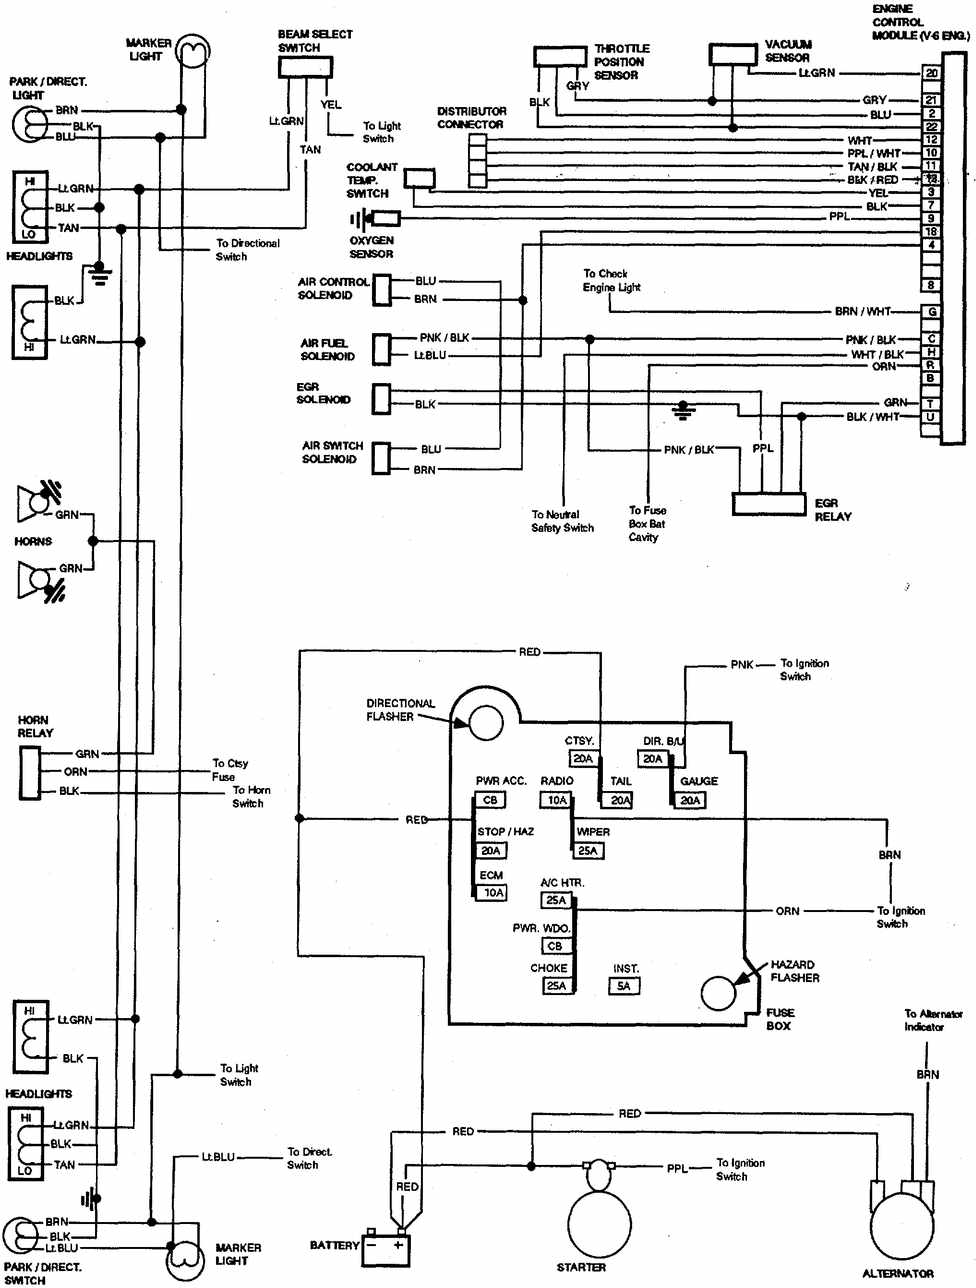 Chevrolet V Trucks Electrical Wiring Diagram on 1995 Volvo 850 Wiring Diagram